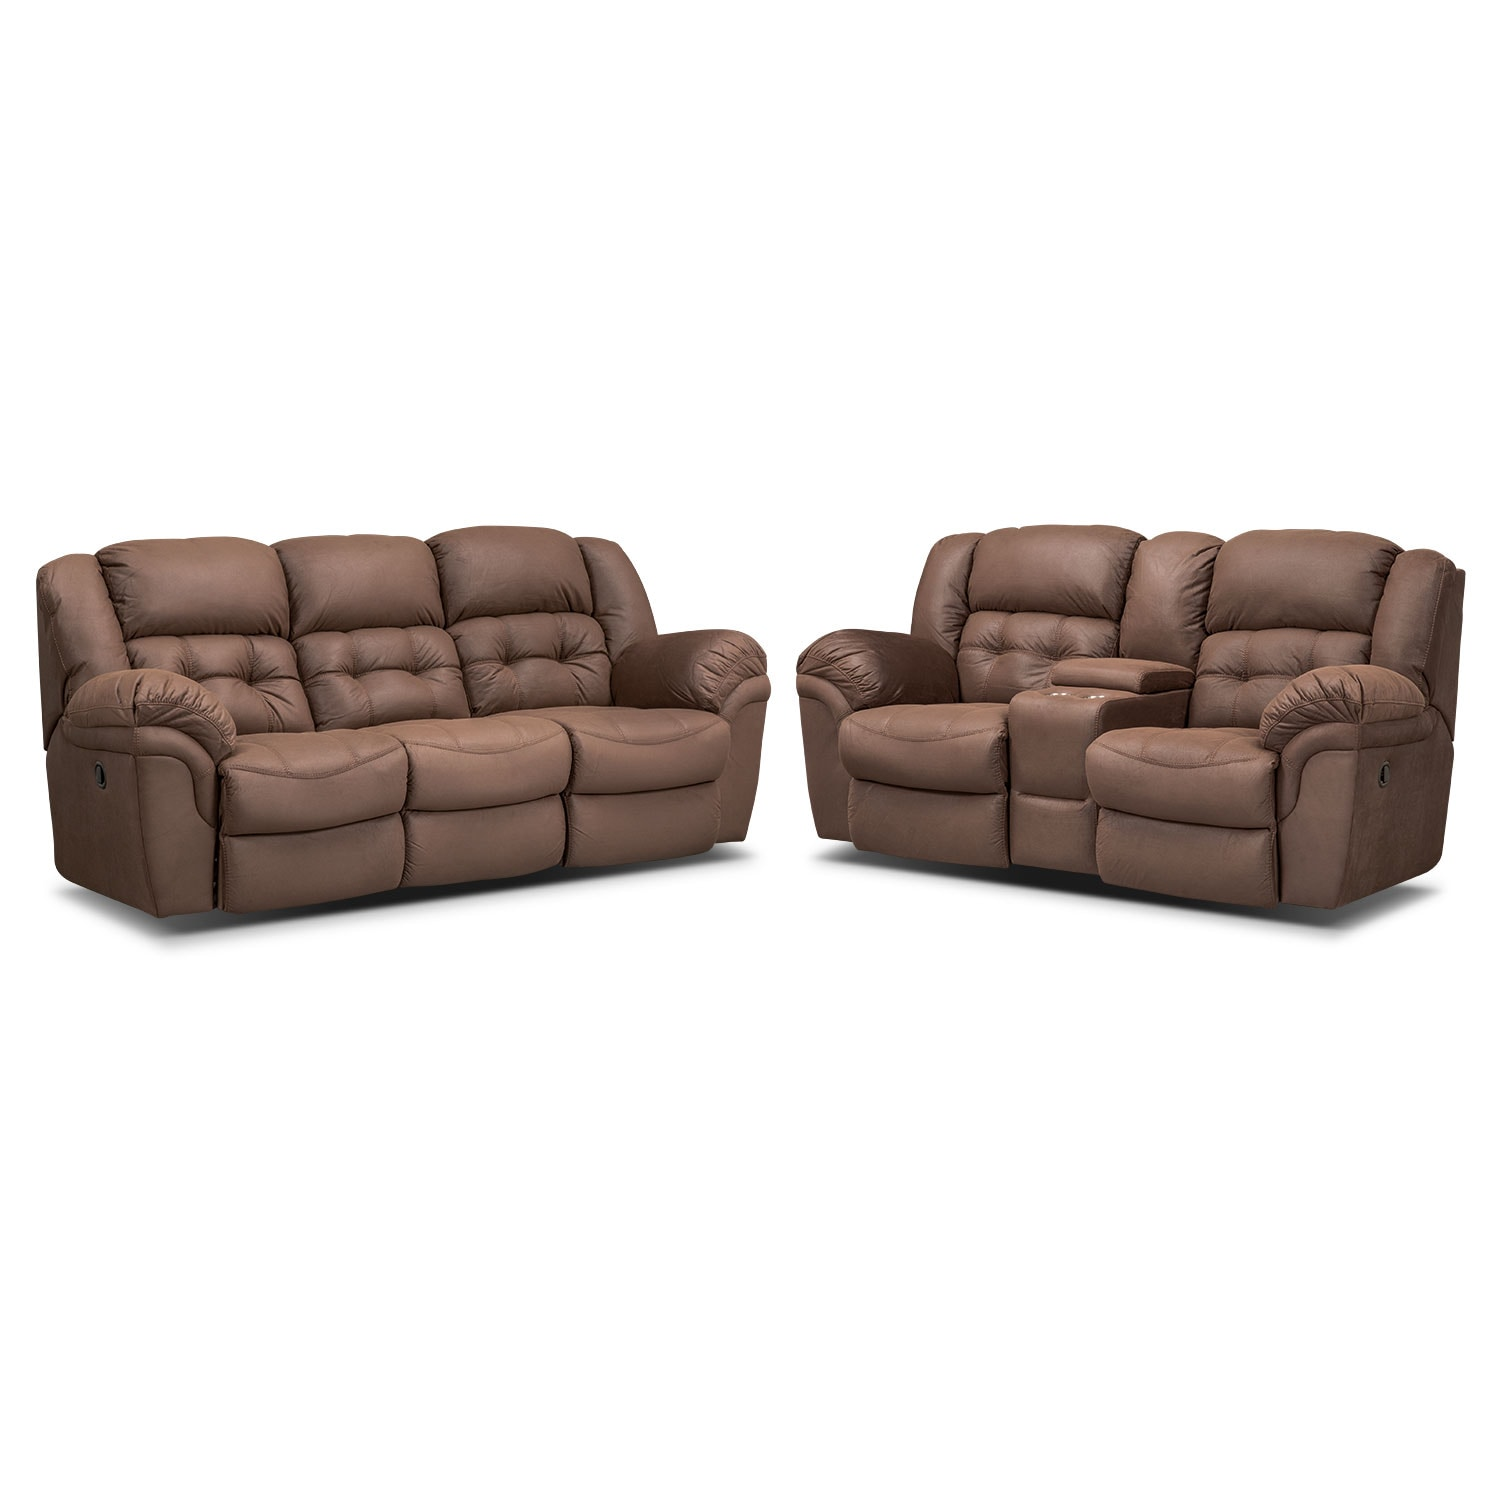 Living Room Furniture - Lancer Chocolate Manual Reclining Sofa and Reclining Loveseat w/ Console Set